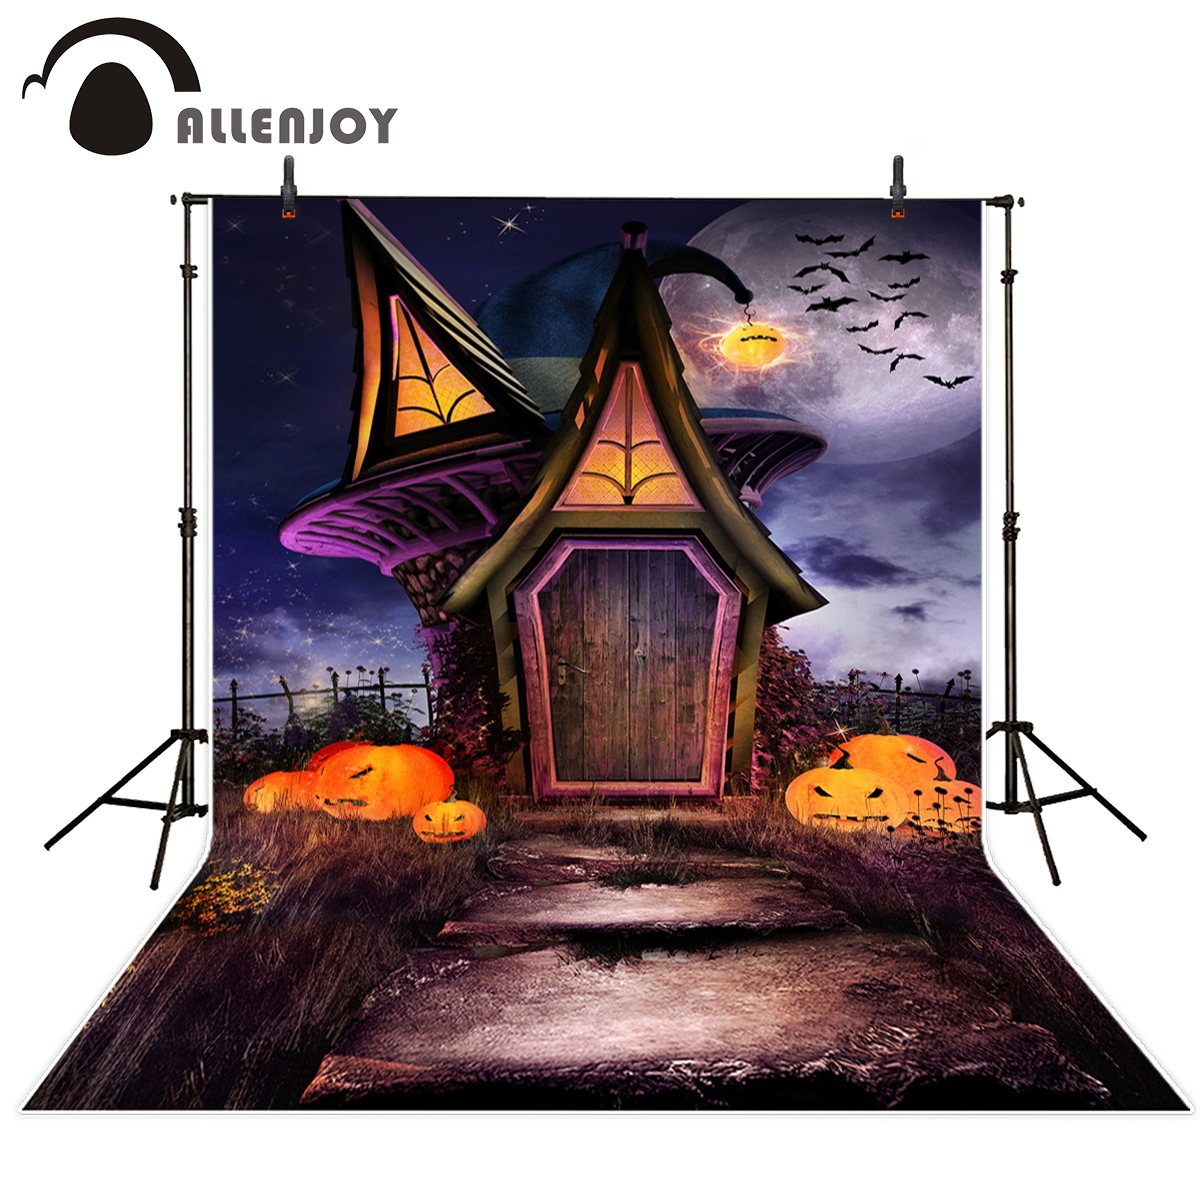 Allenjoy photography background mysterious Witch's House pumpkin Halloween theme backdrop professional photo background studio ночная сорочка длинная без рукавов